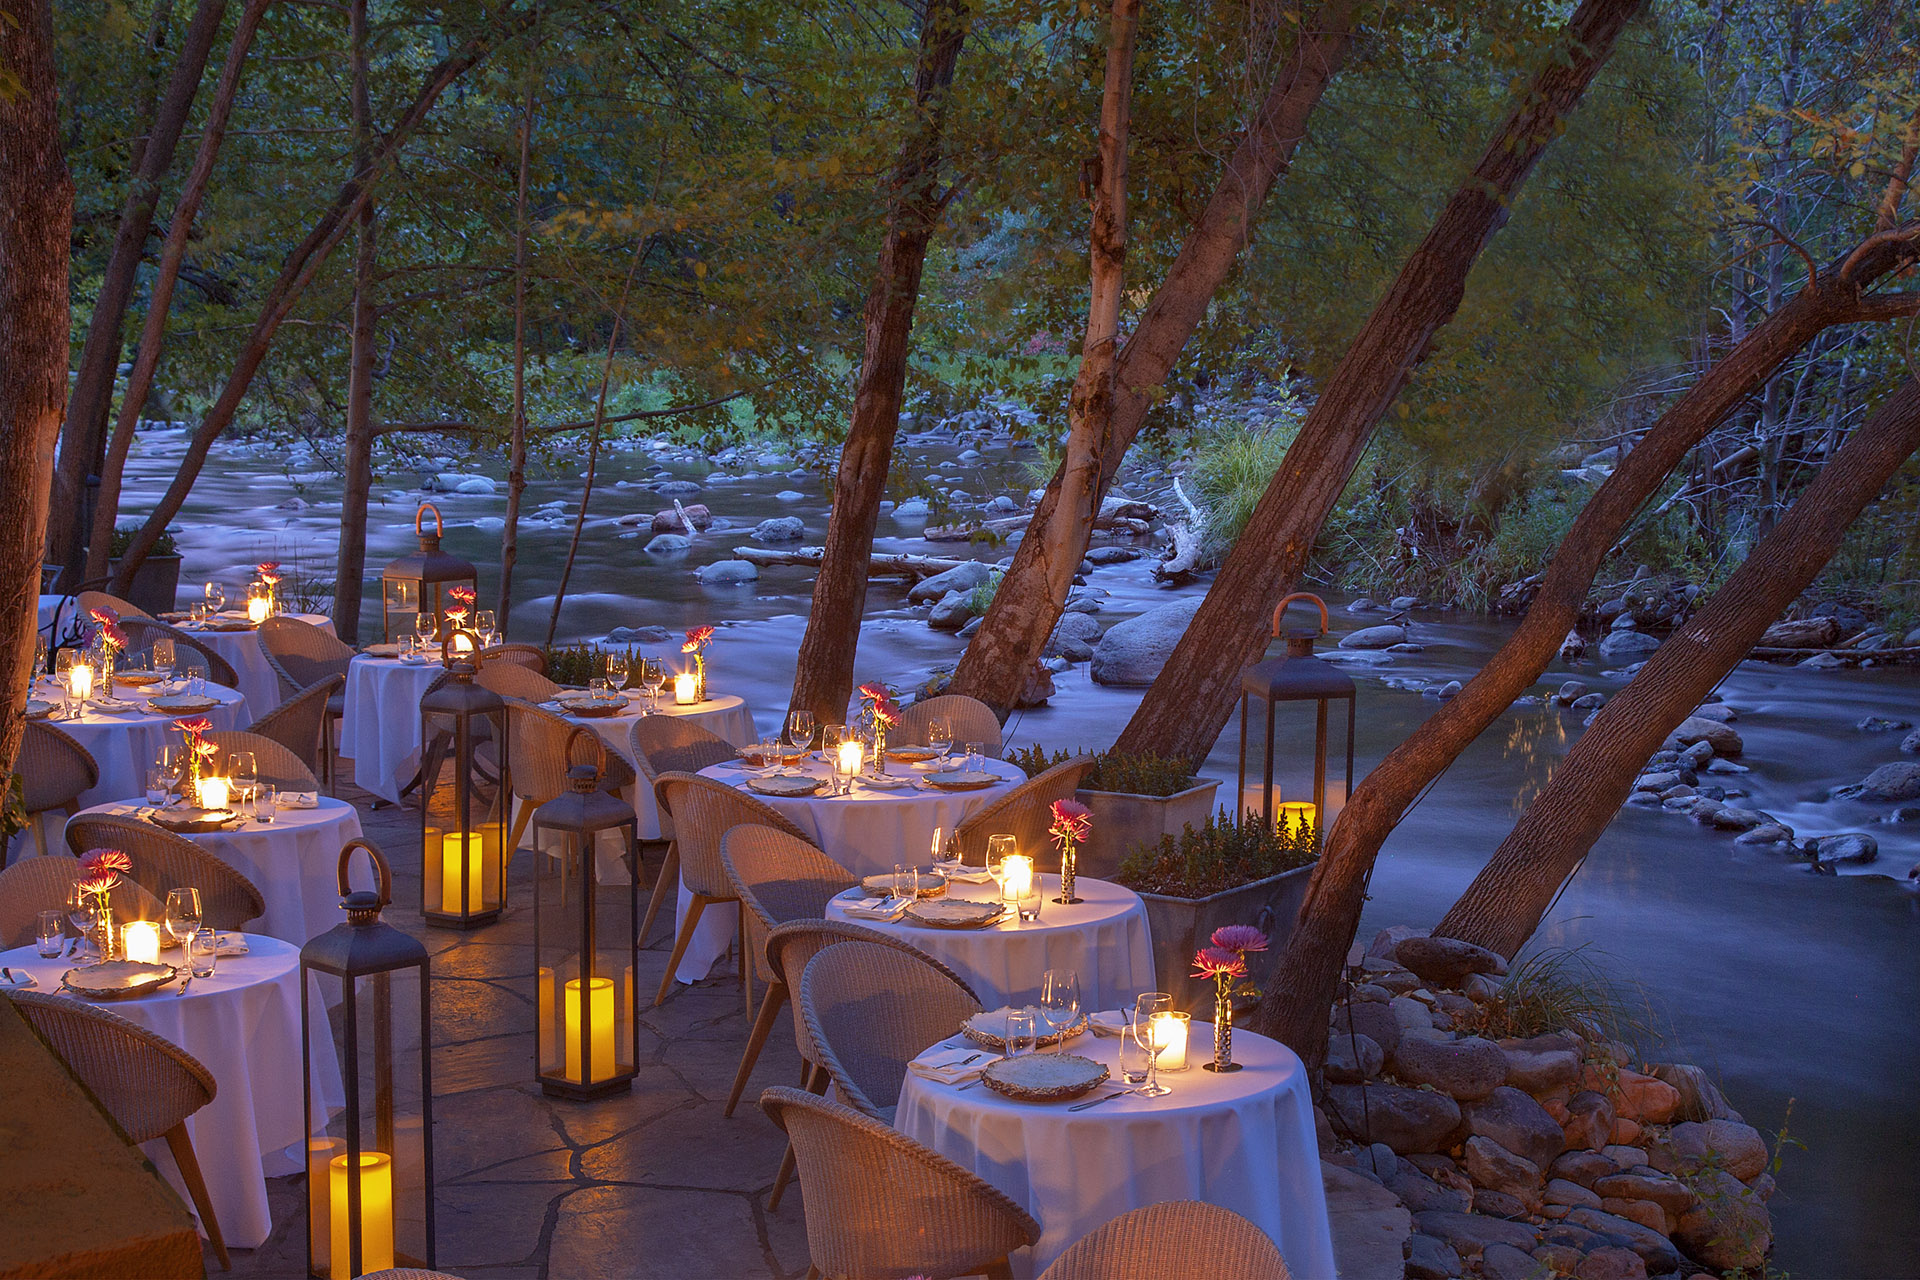 Candle-lit white tables set for dinner, large lit lanterns, all next to a creek with rounded rocks